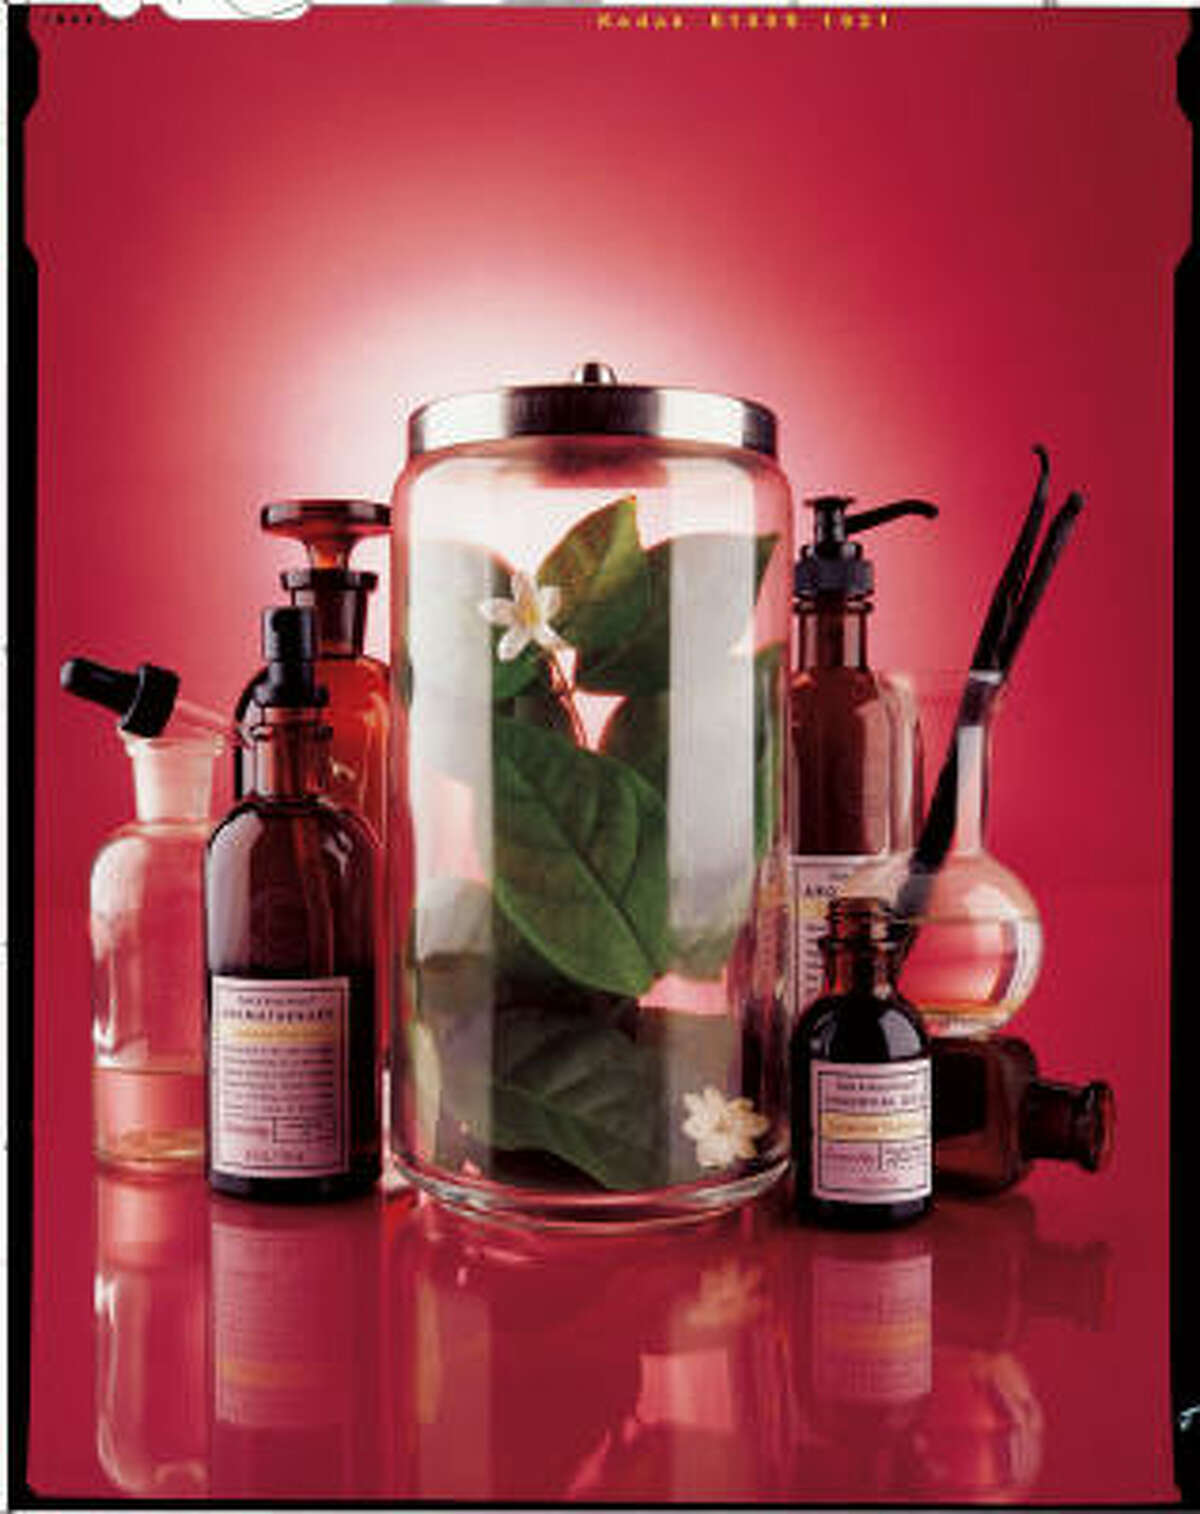 Bath & Body Works has so many great scents to choose from and ways to pamper yourself. It's a little bit of heaven on Earth. Vote for your favorite cosmetics store in our Ultimate poll.